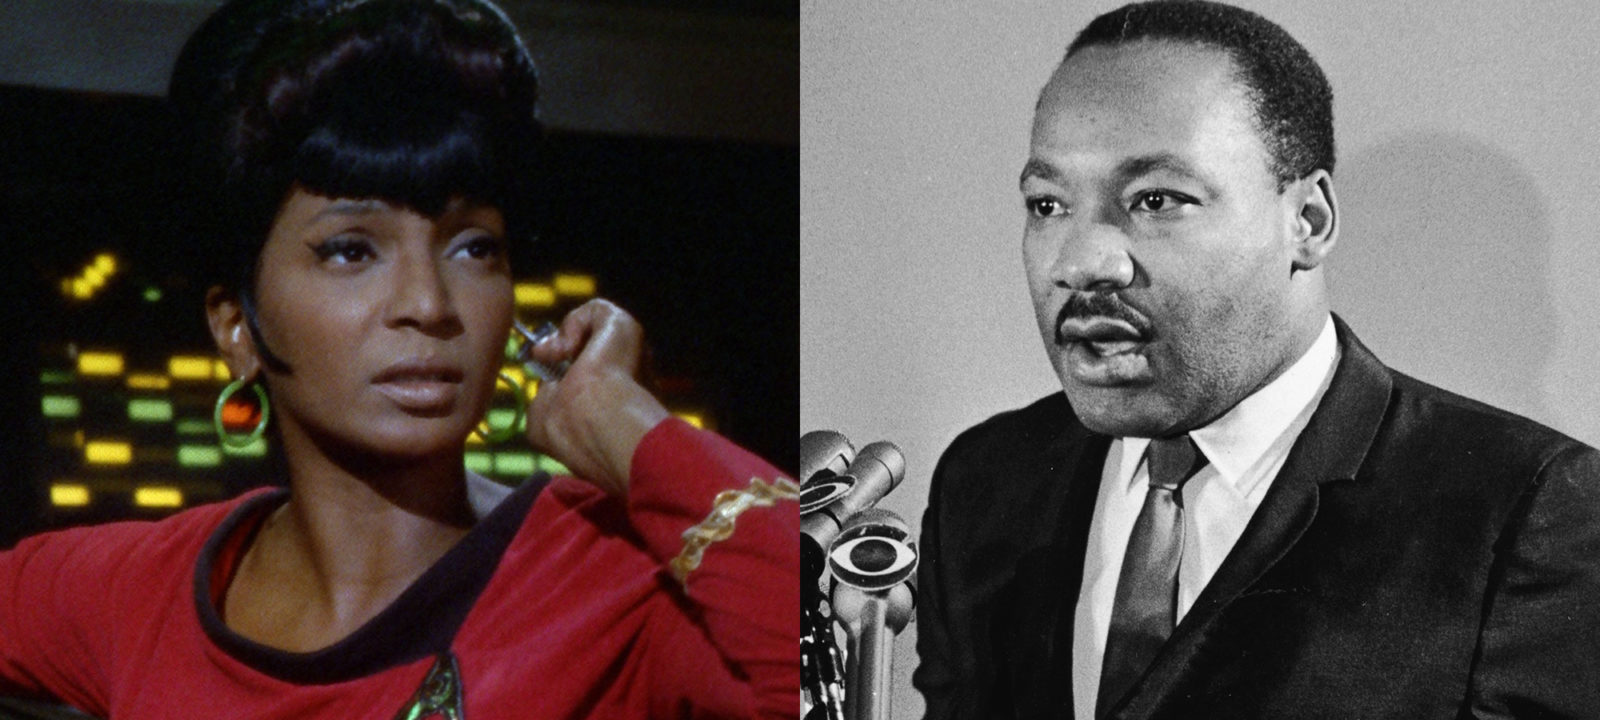 Discussion on this topic: Joan Vohs, nichelle-nichols/